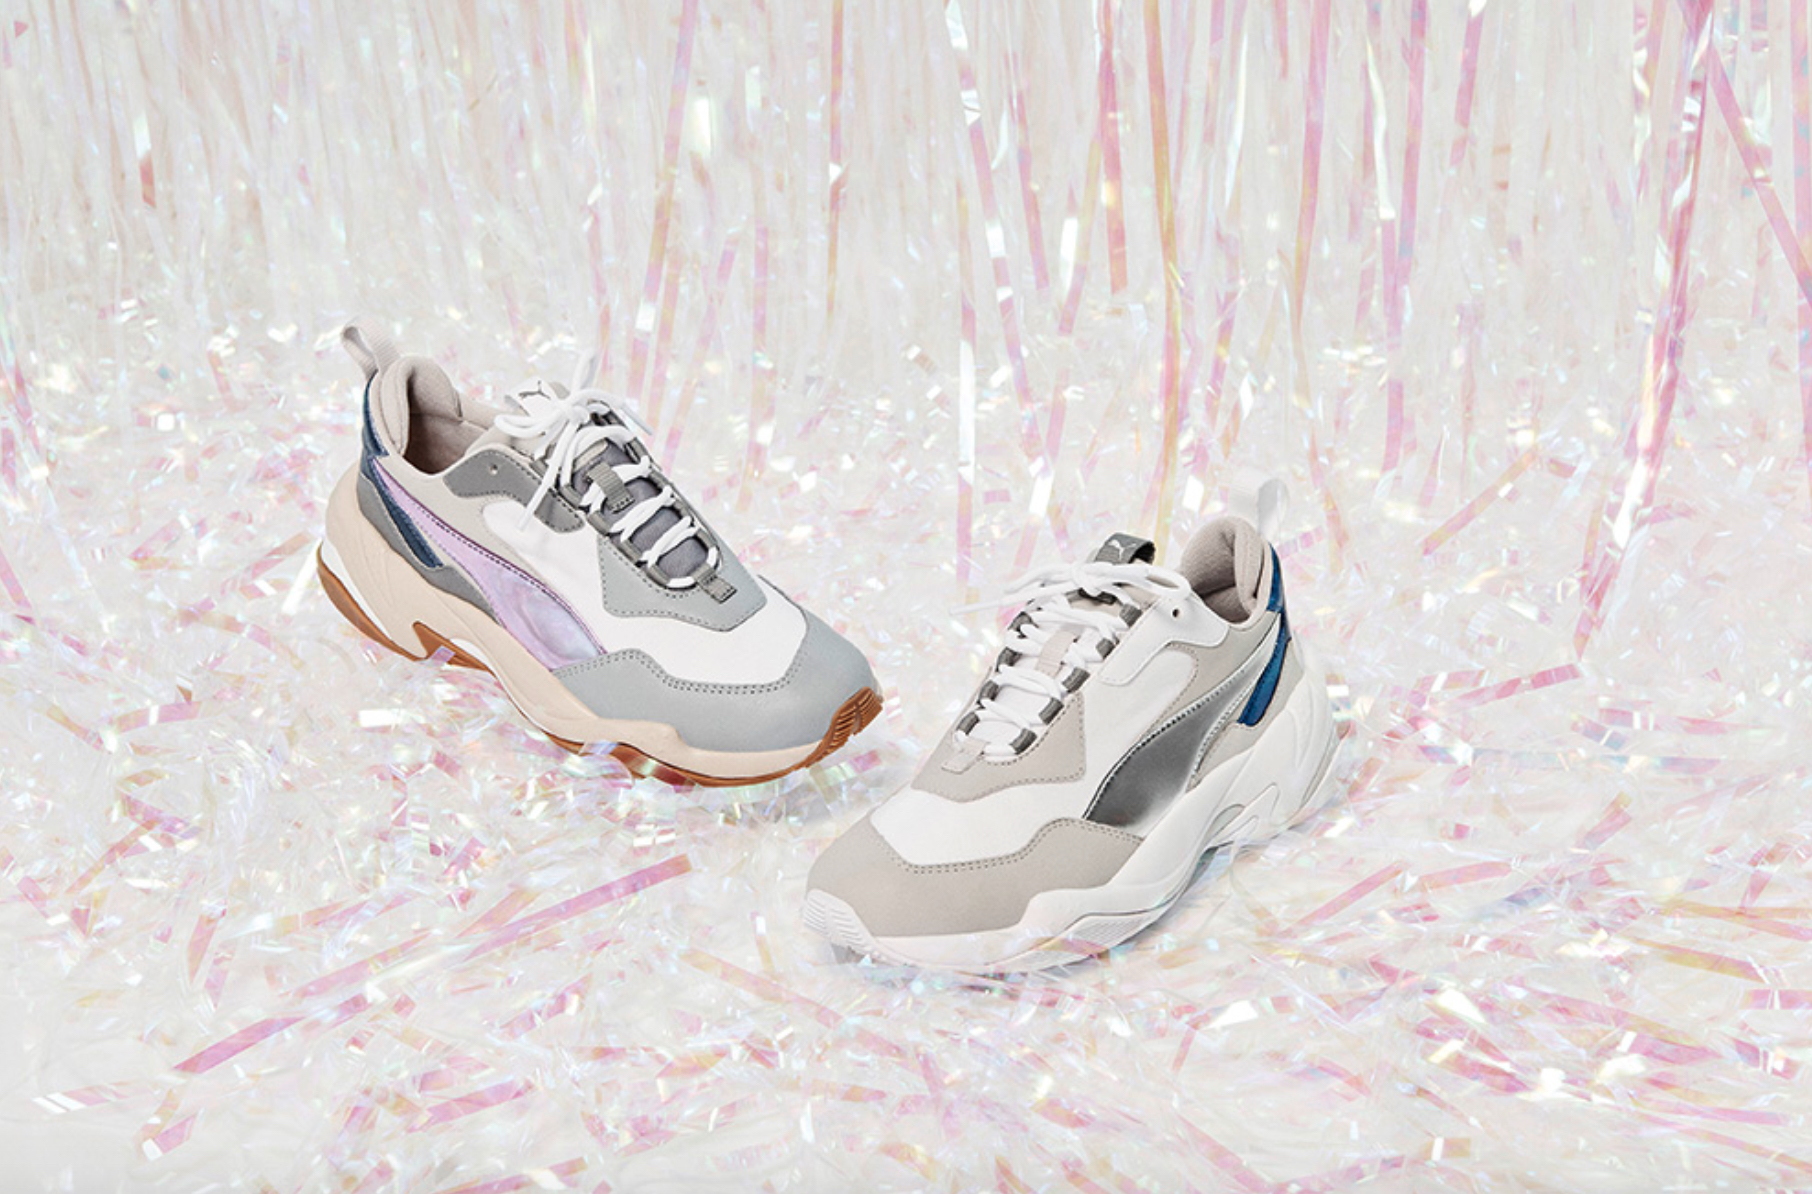 Puma Womens Thunder Electric Drop Sneakers in White & Pink